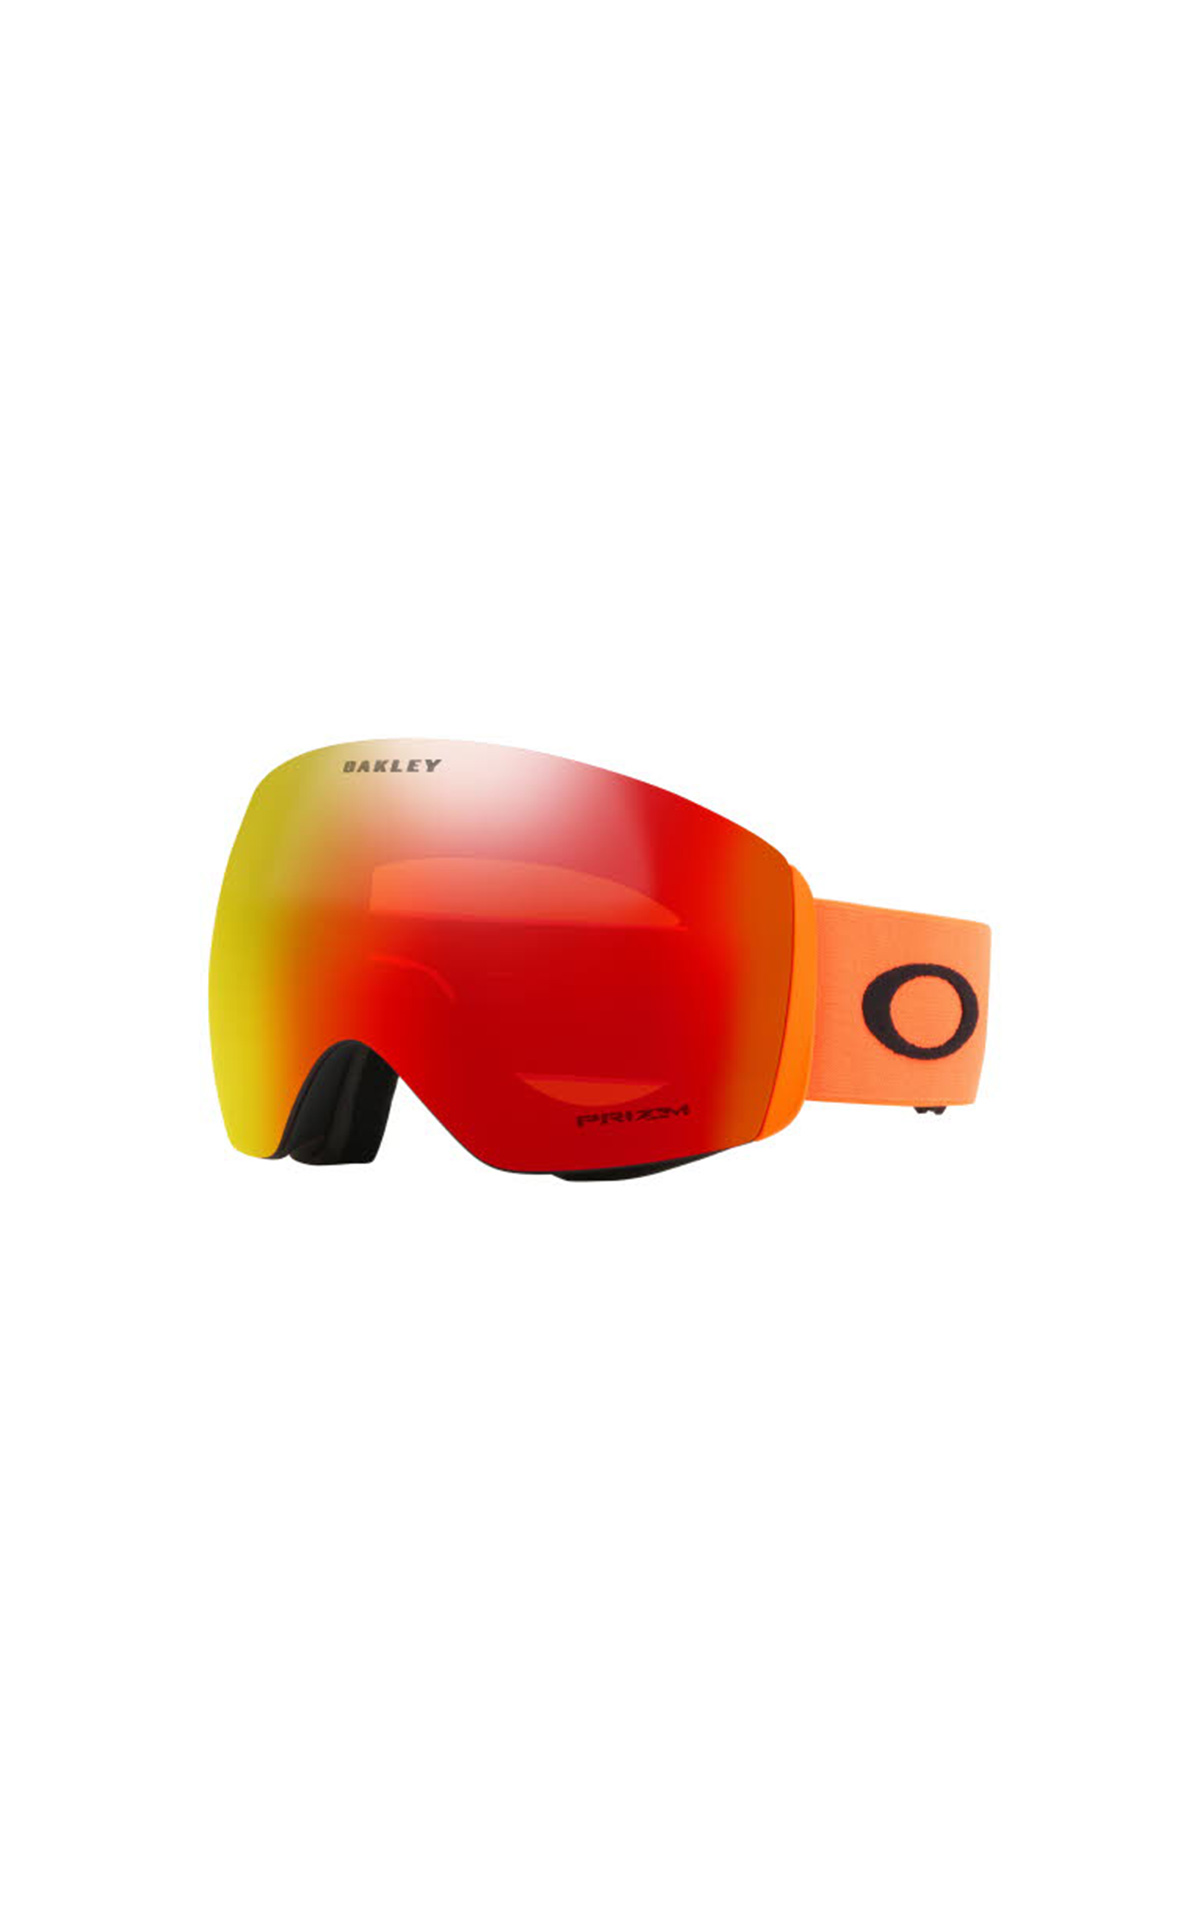 Oakley Orange SunglassHut Ski Goggles